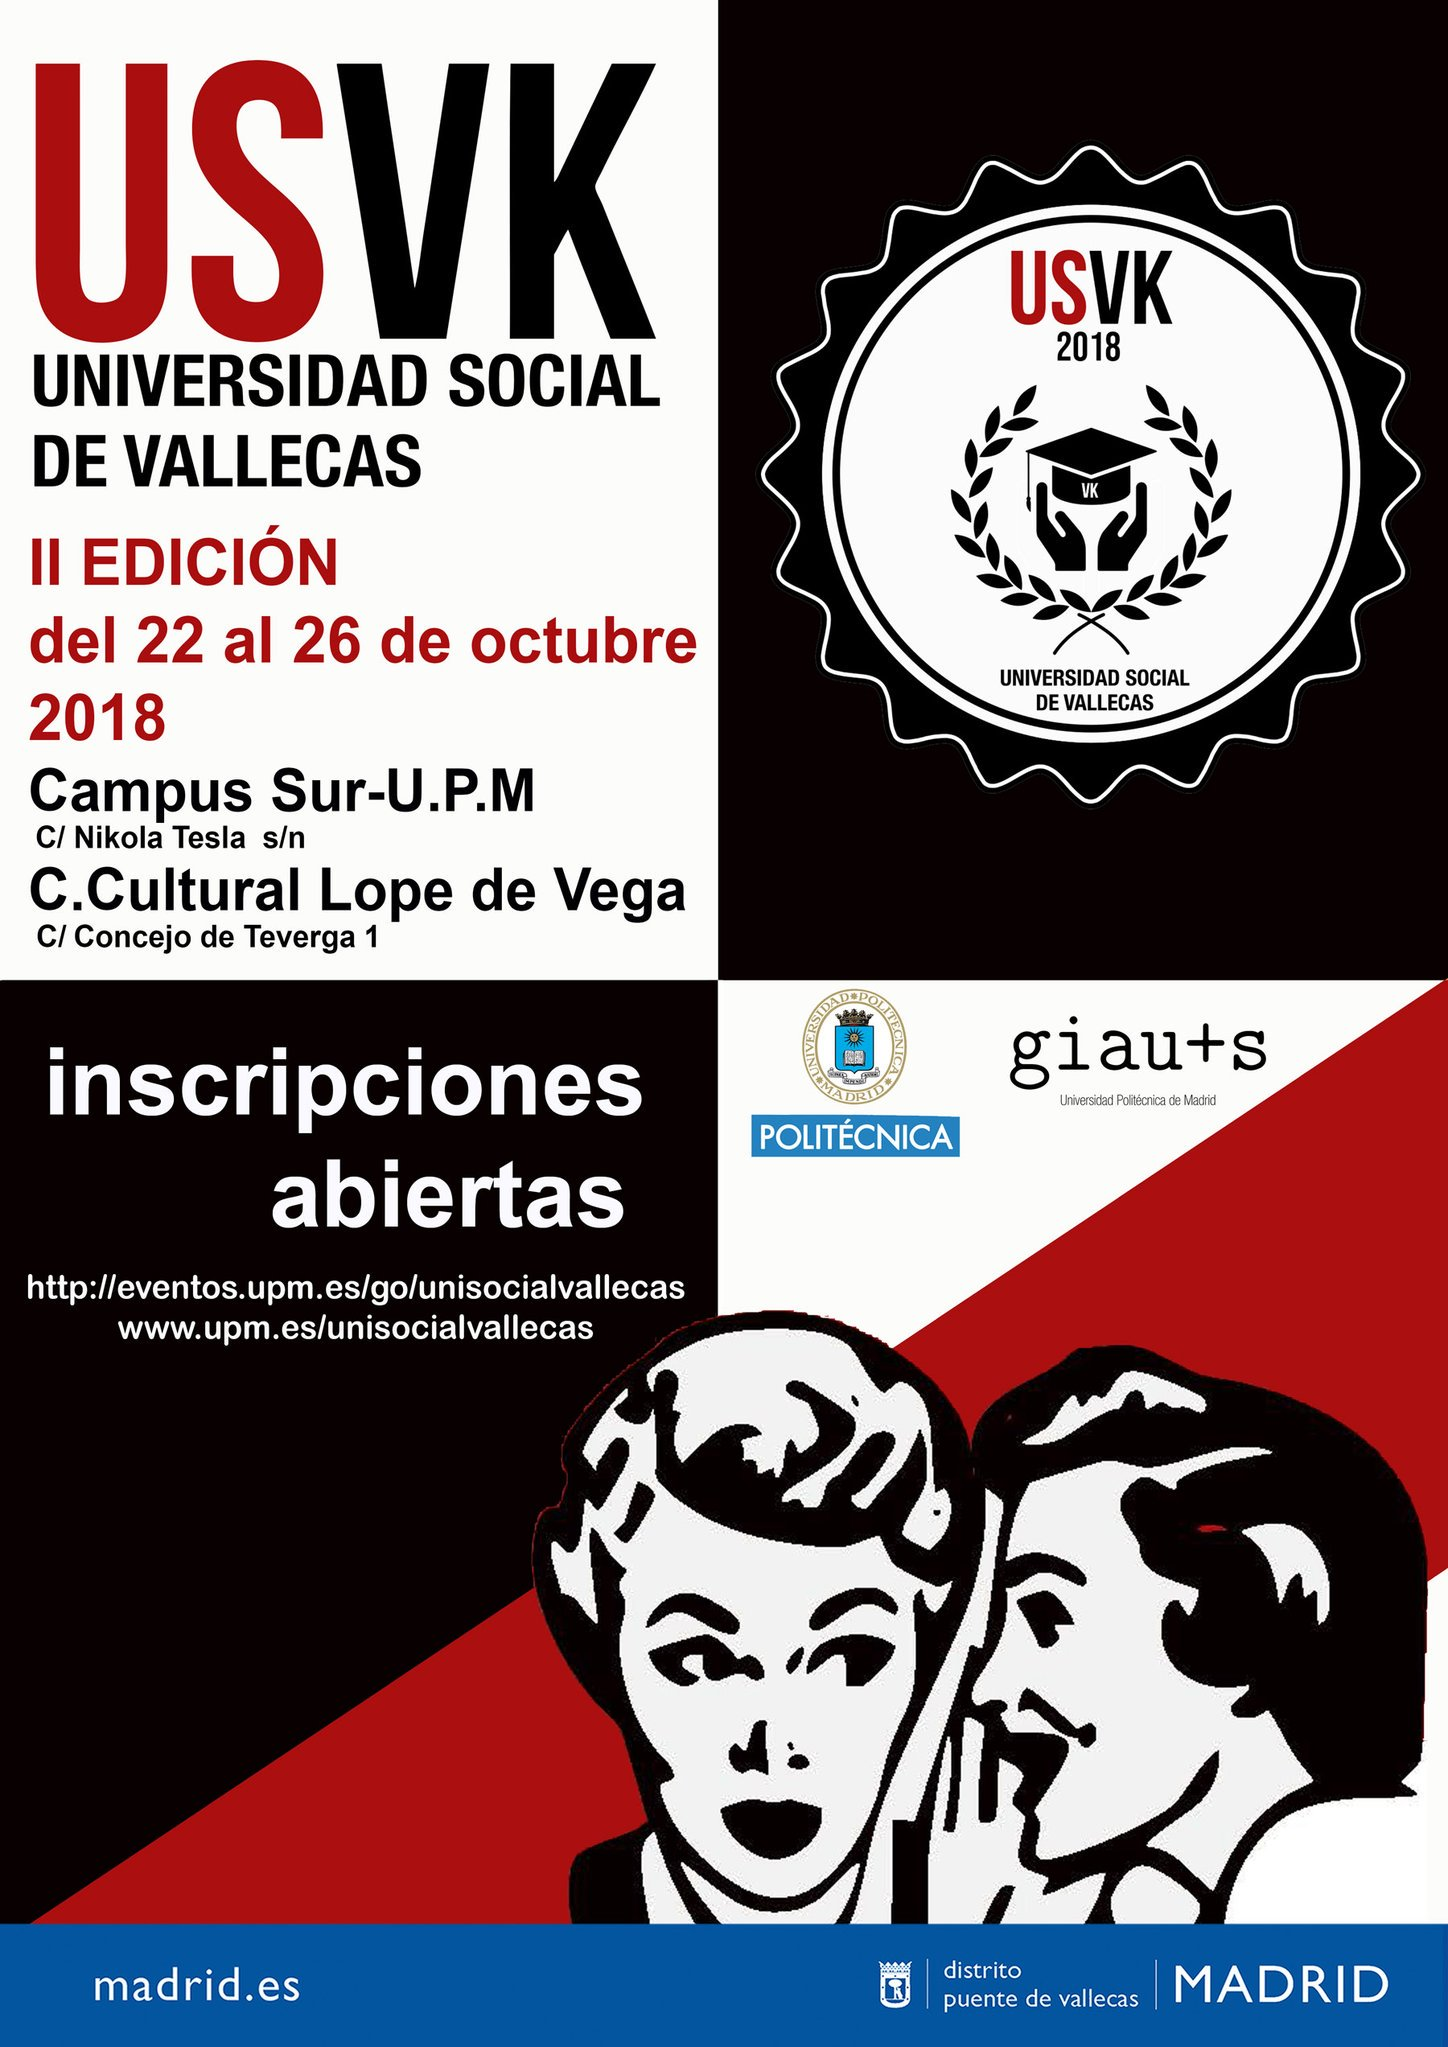 Universidas Social Vallekas